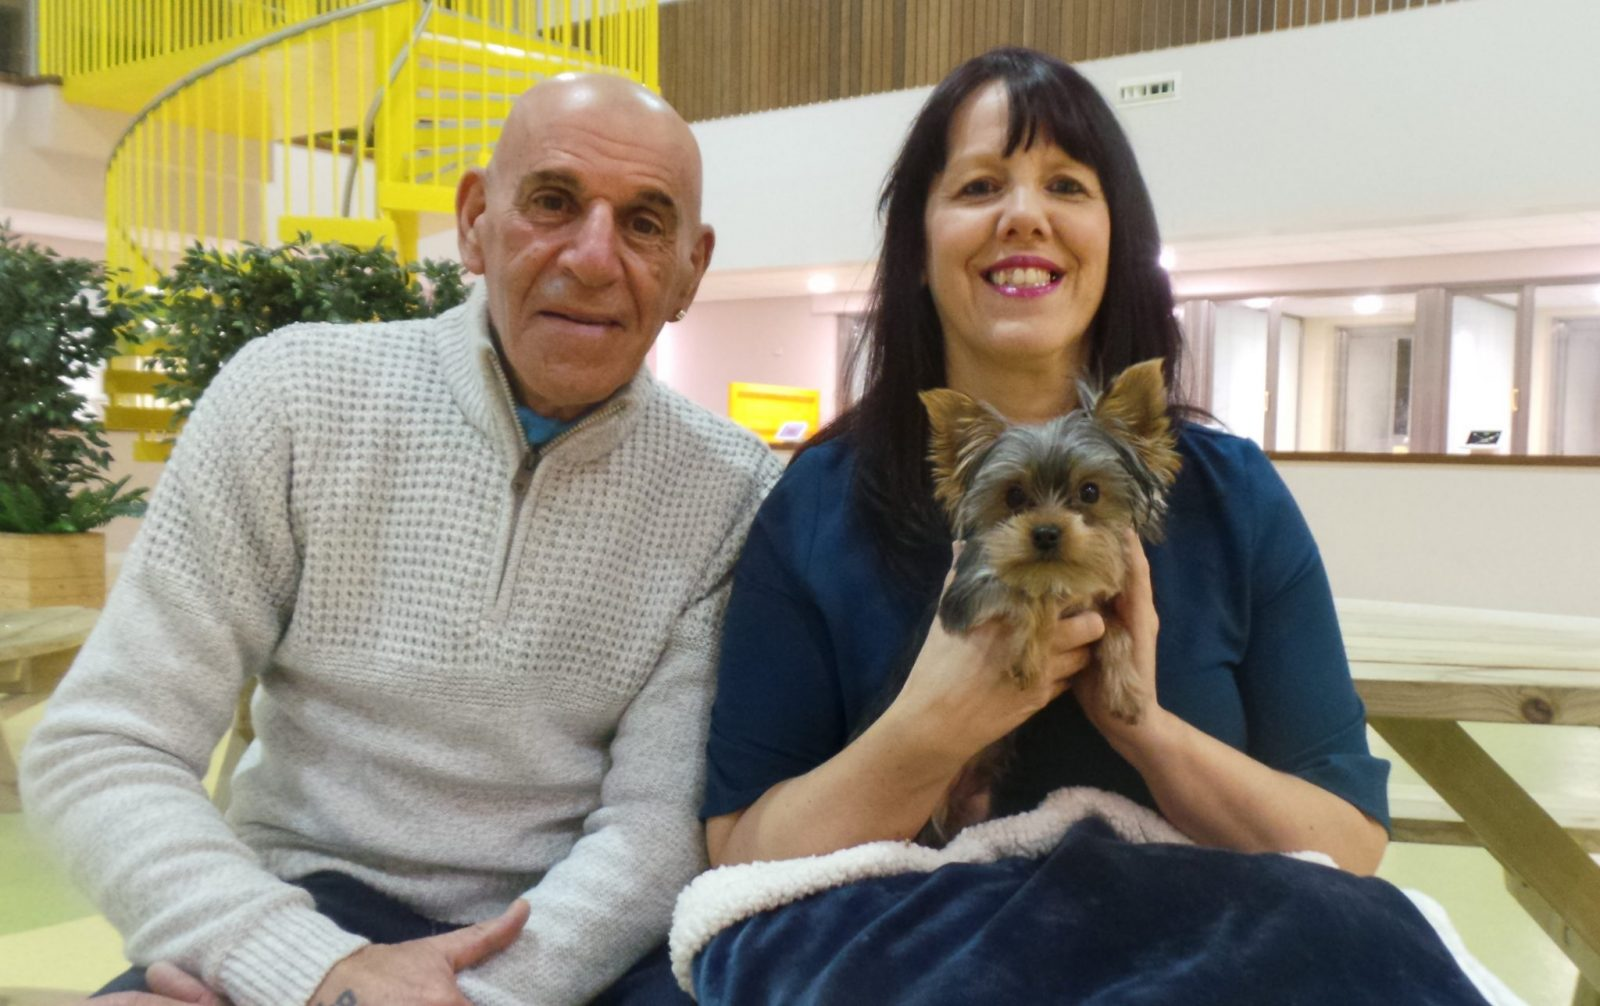 four-month-old-yorkshire-terrier-simon-is-pictured-with-new-owners-deborah-harmer-and-les-lewis